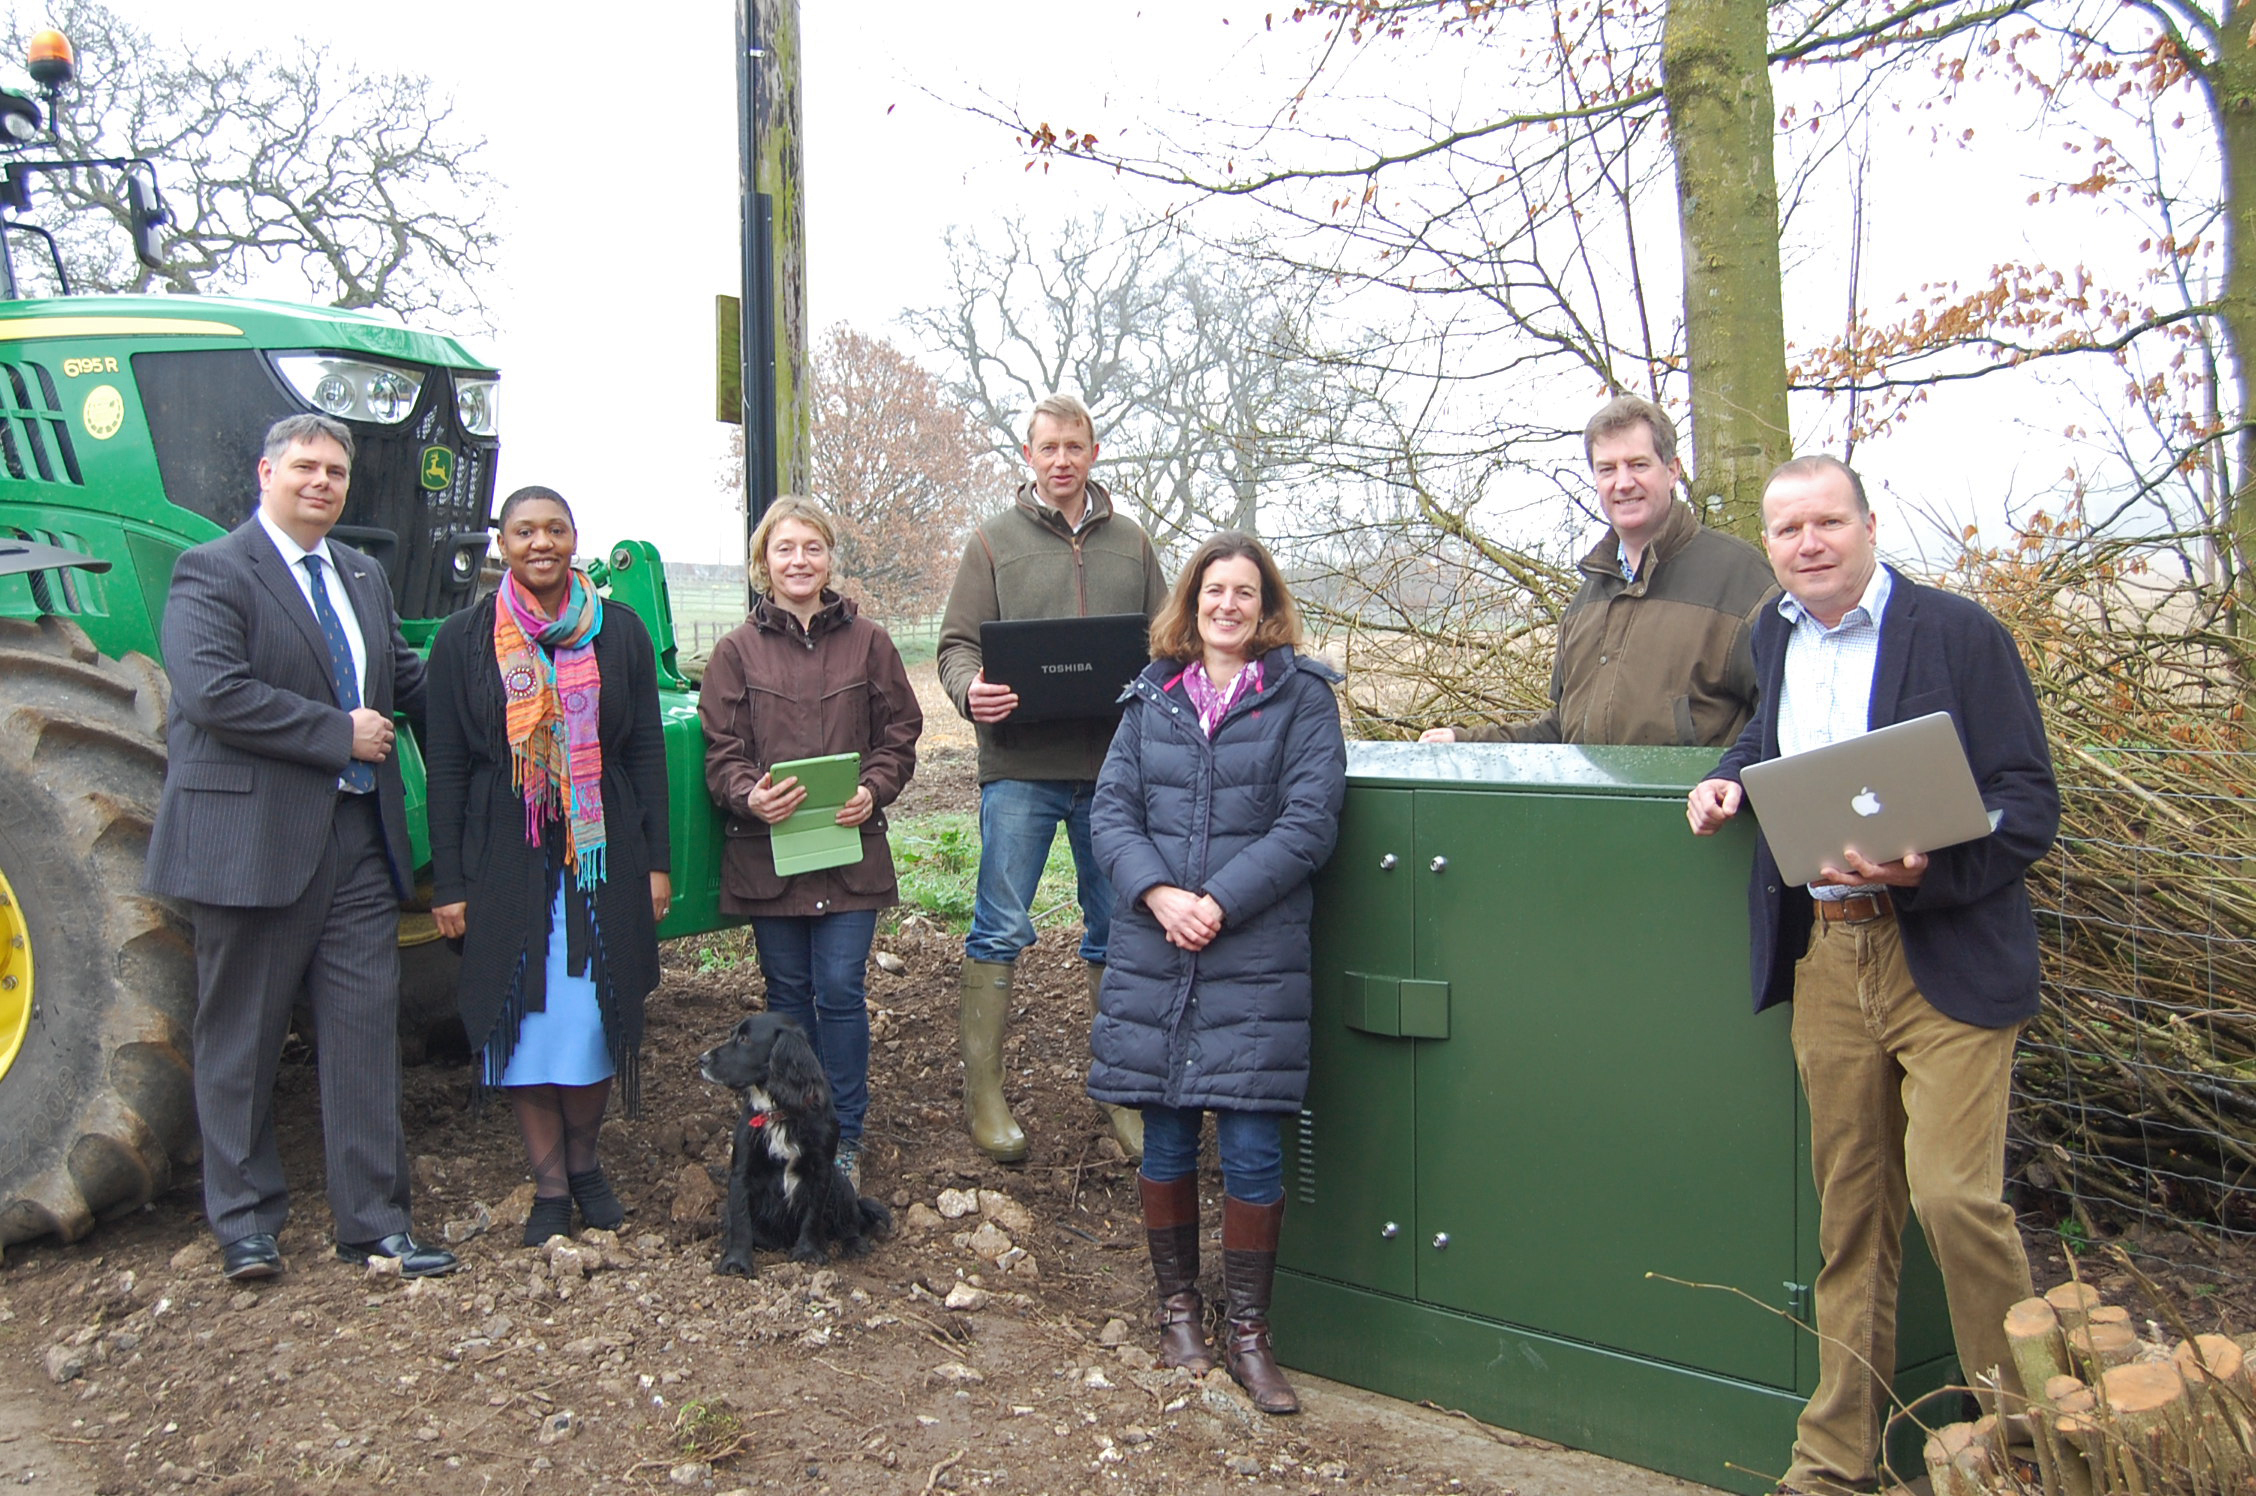 Partnership approach brings high-speed broadband to rural villages in the New Forest and Meon Valley